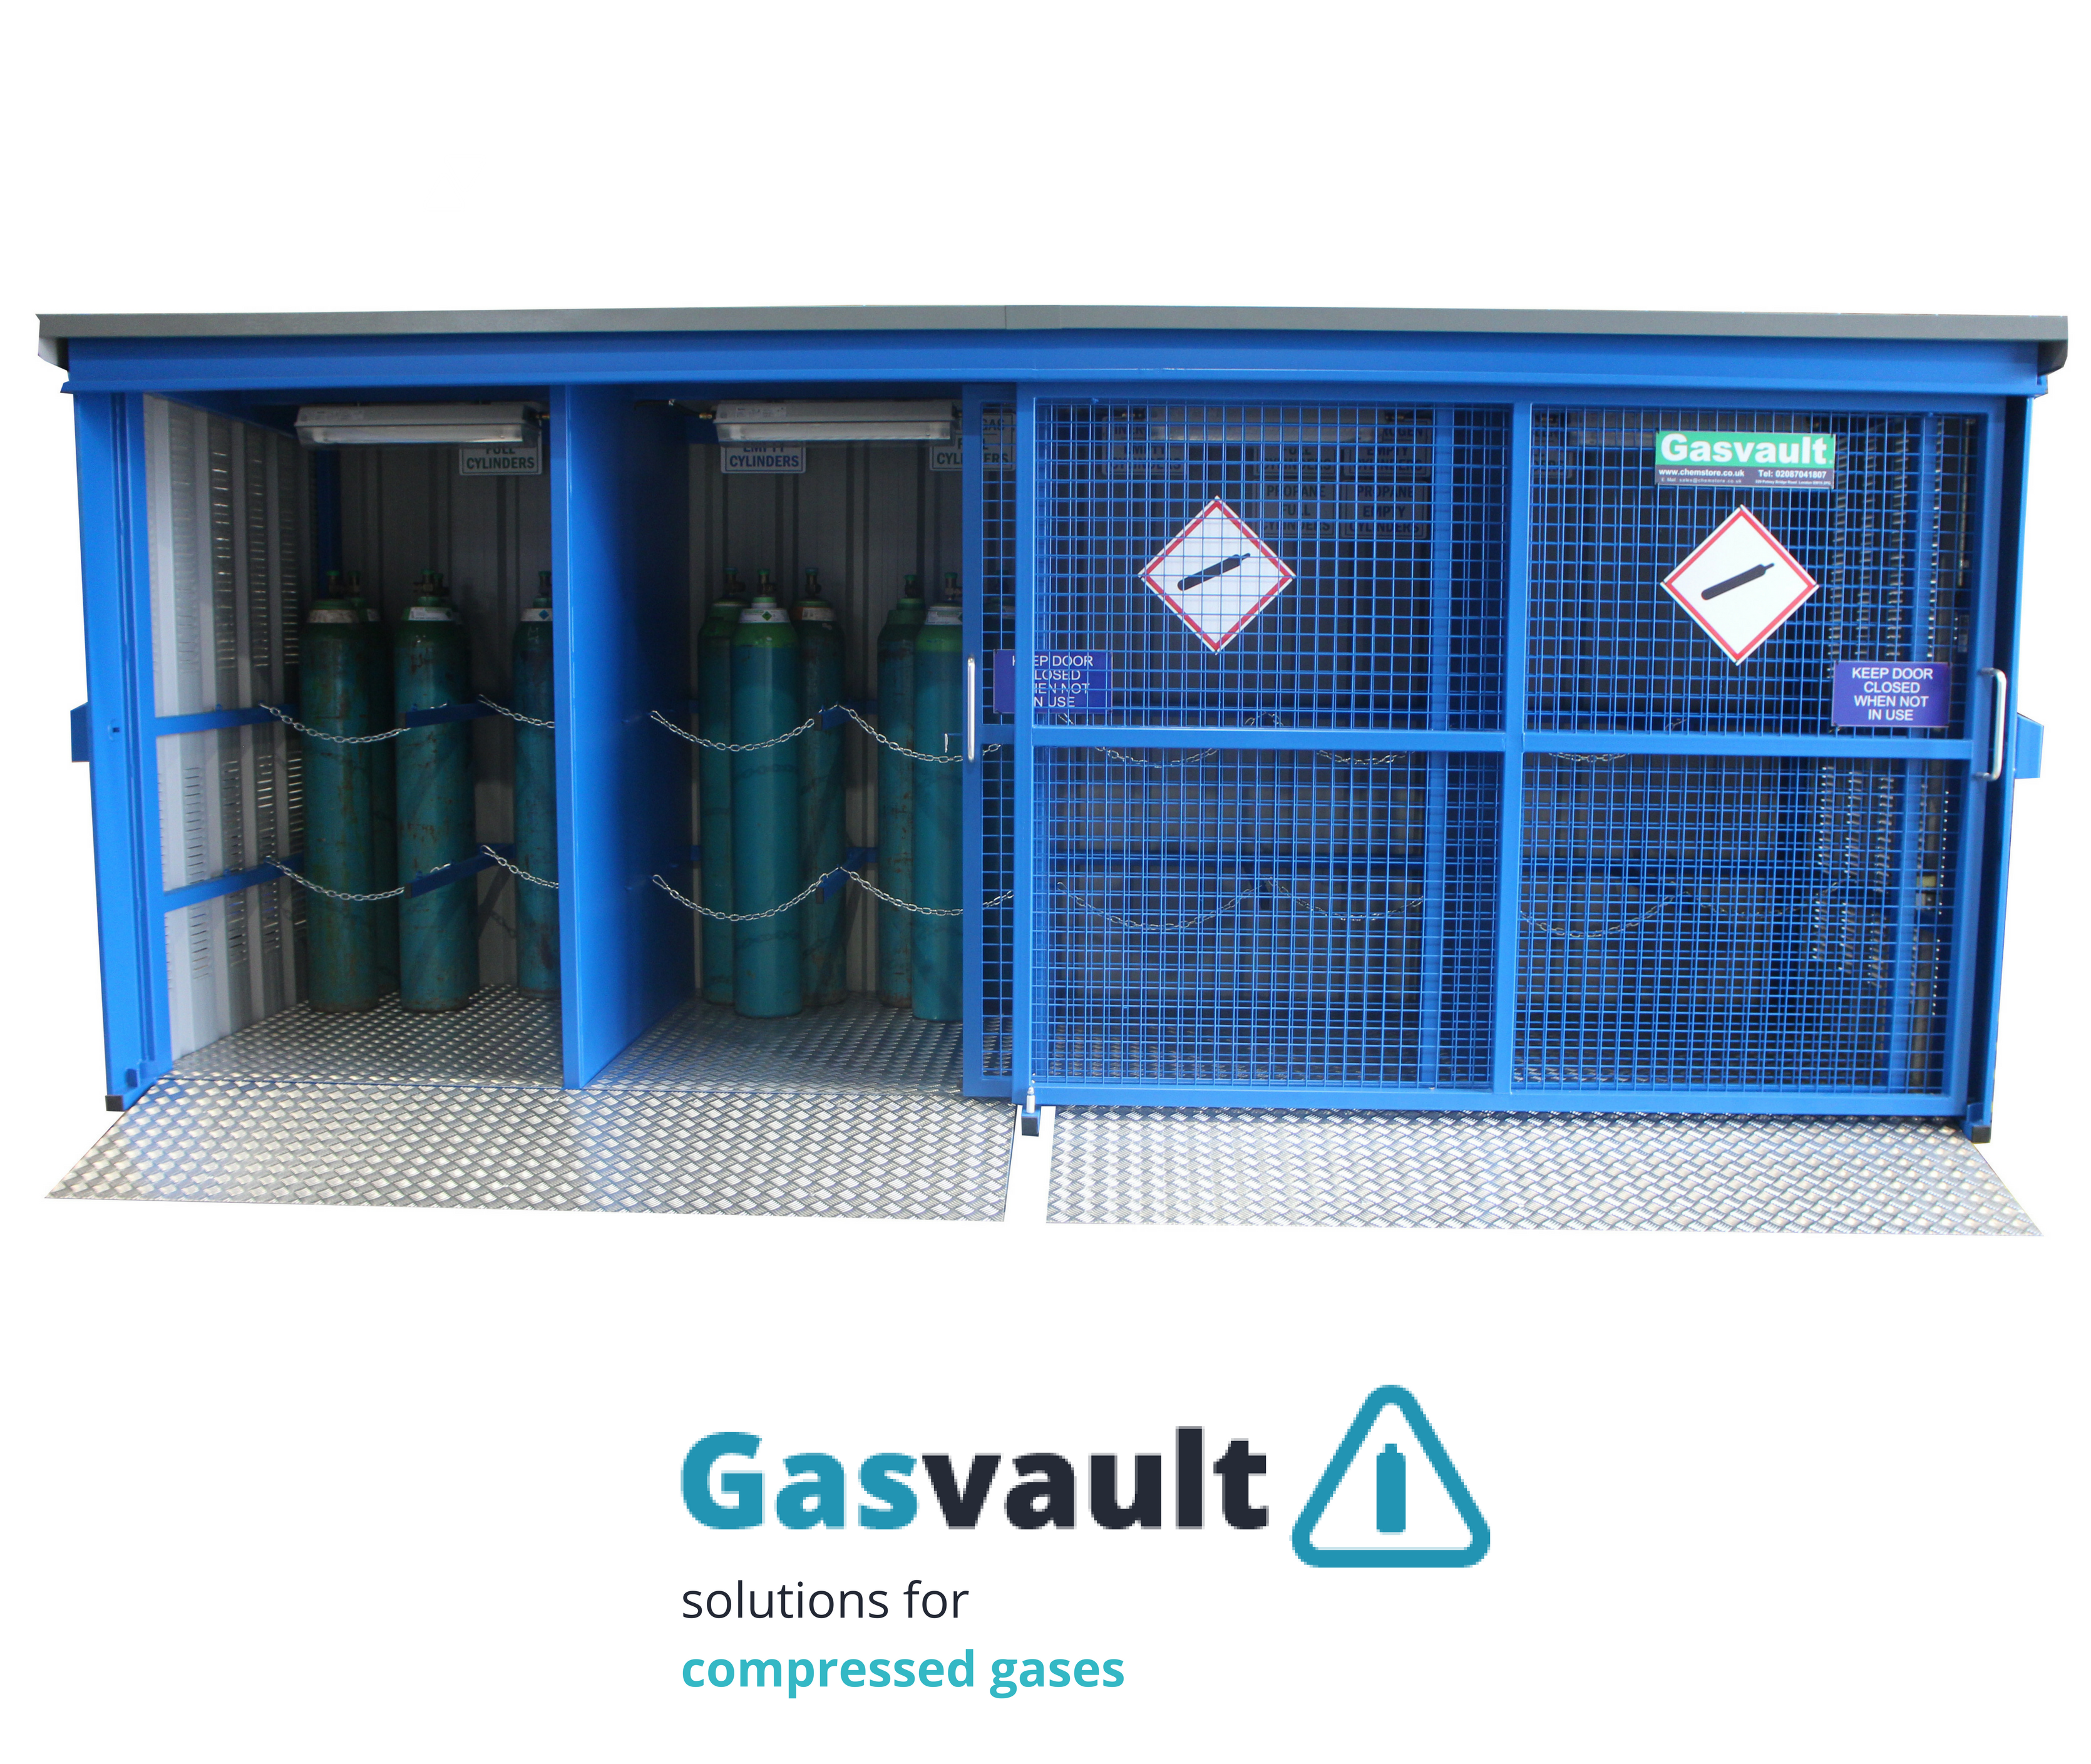 Gasvault Solutions For Compressed Gases Chemstore Ireland